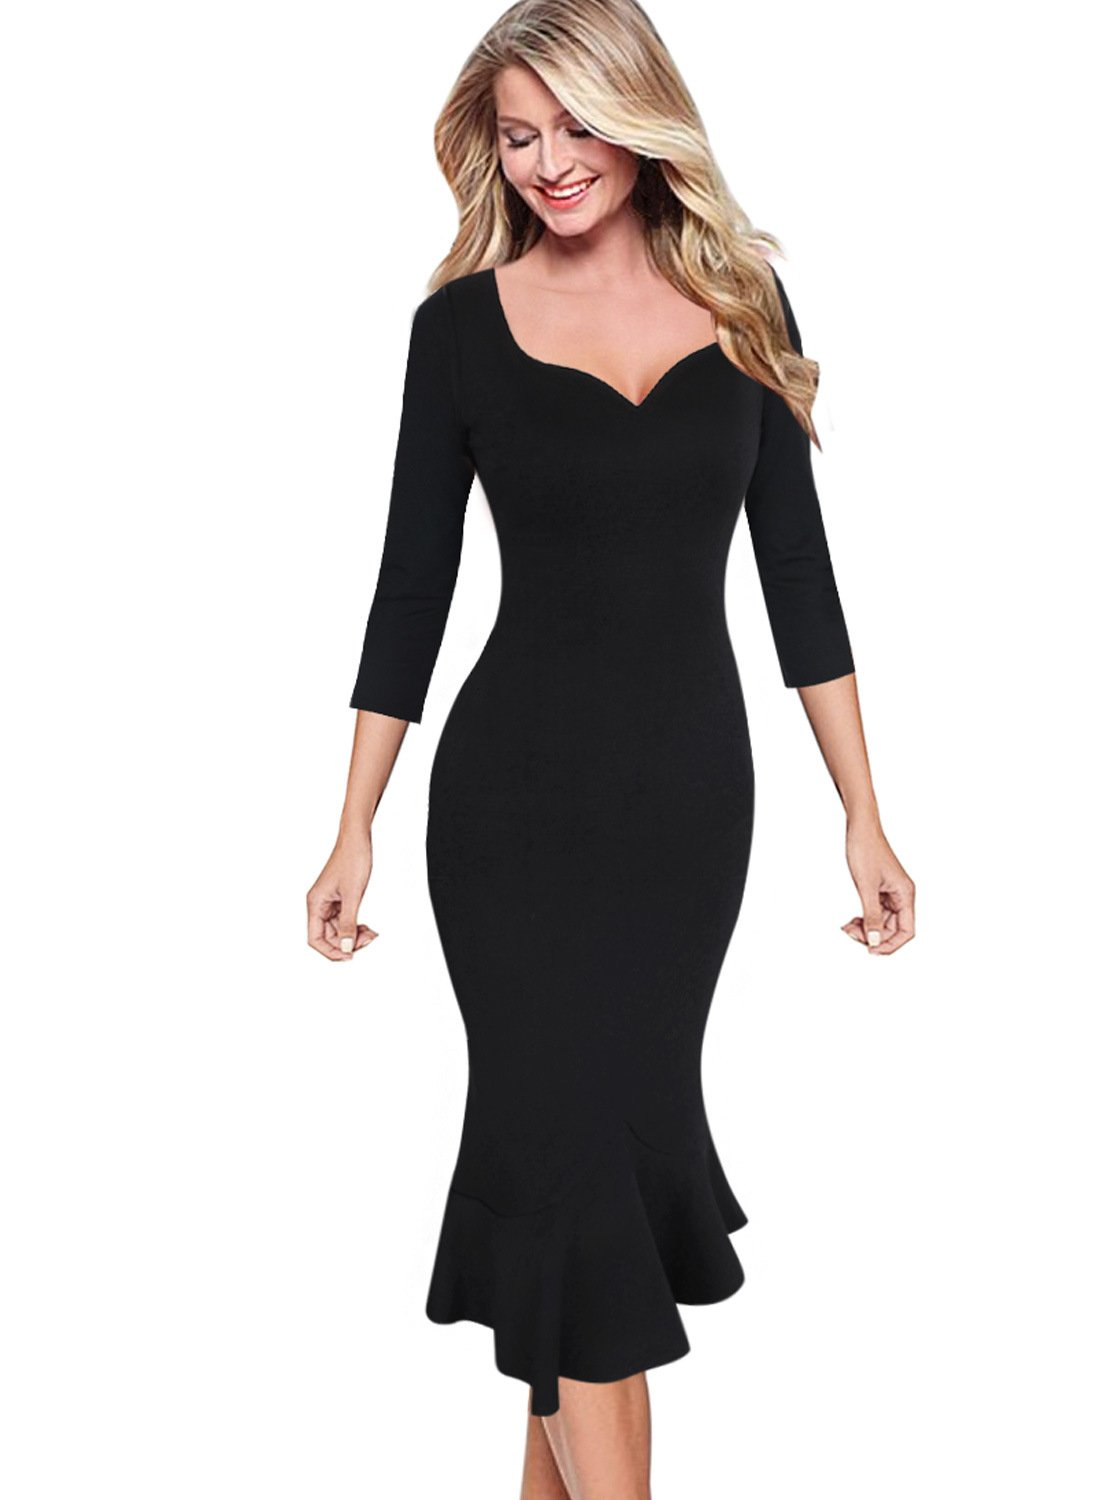 VfEmage Womens Elegant Vintage Cocktail Party Mermaid Midi Mid-Calf Dress 9210 BLK 14